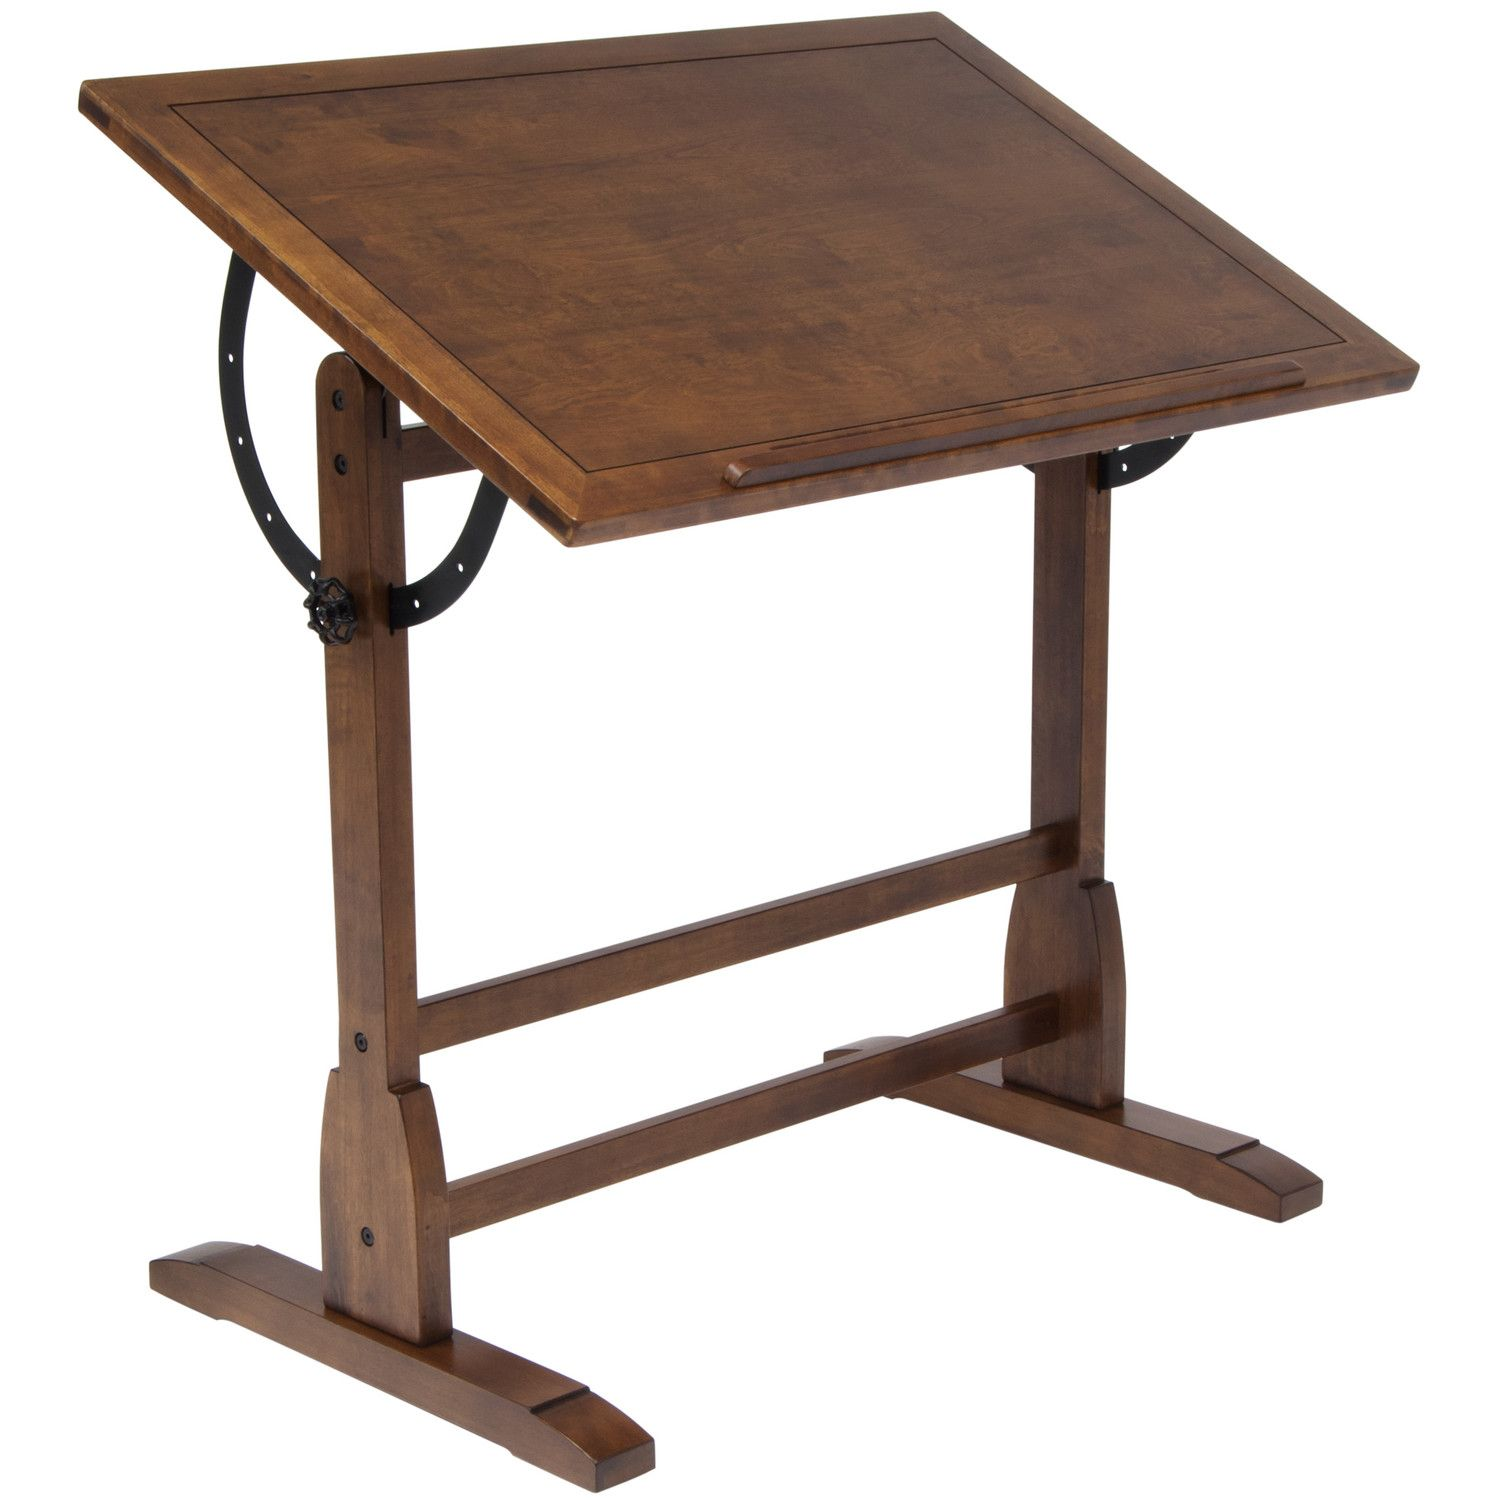 Features:  Adjustable Angle Table Top From Flat To 90 Degrees.  Built In